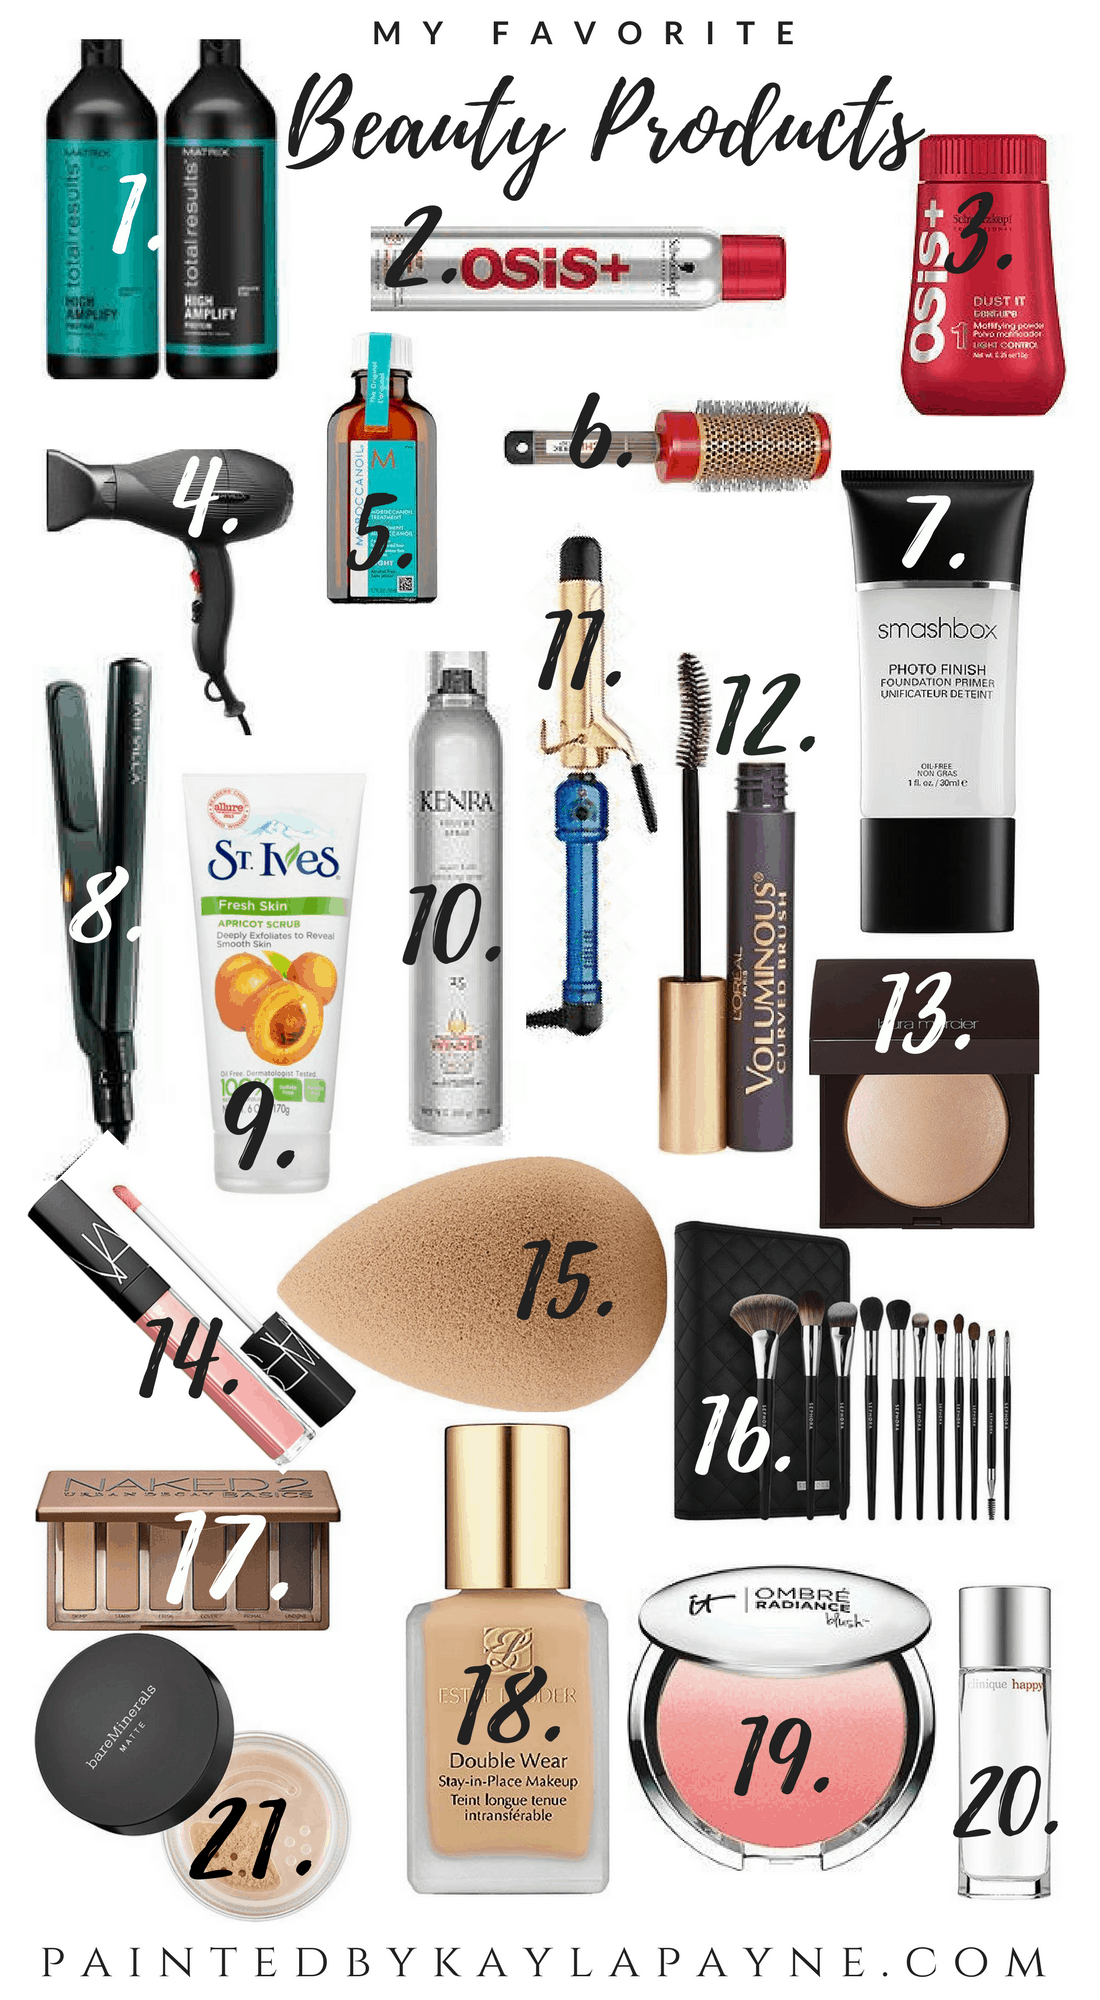 Ultimate gift guide to my favorite beauty products!